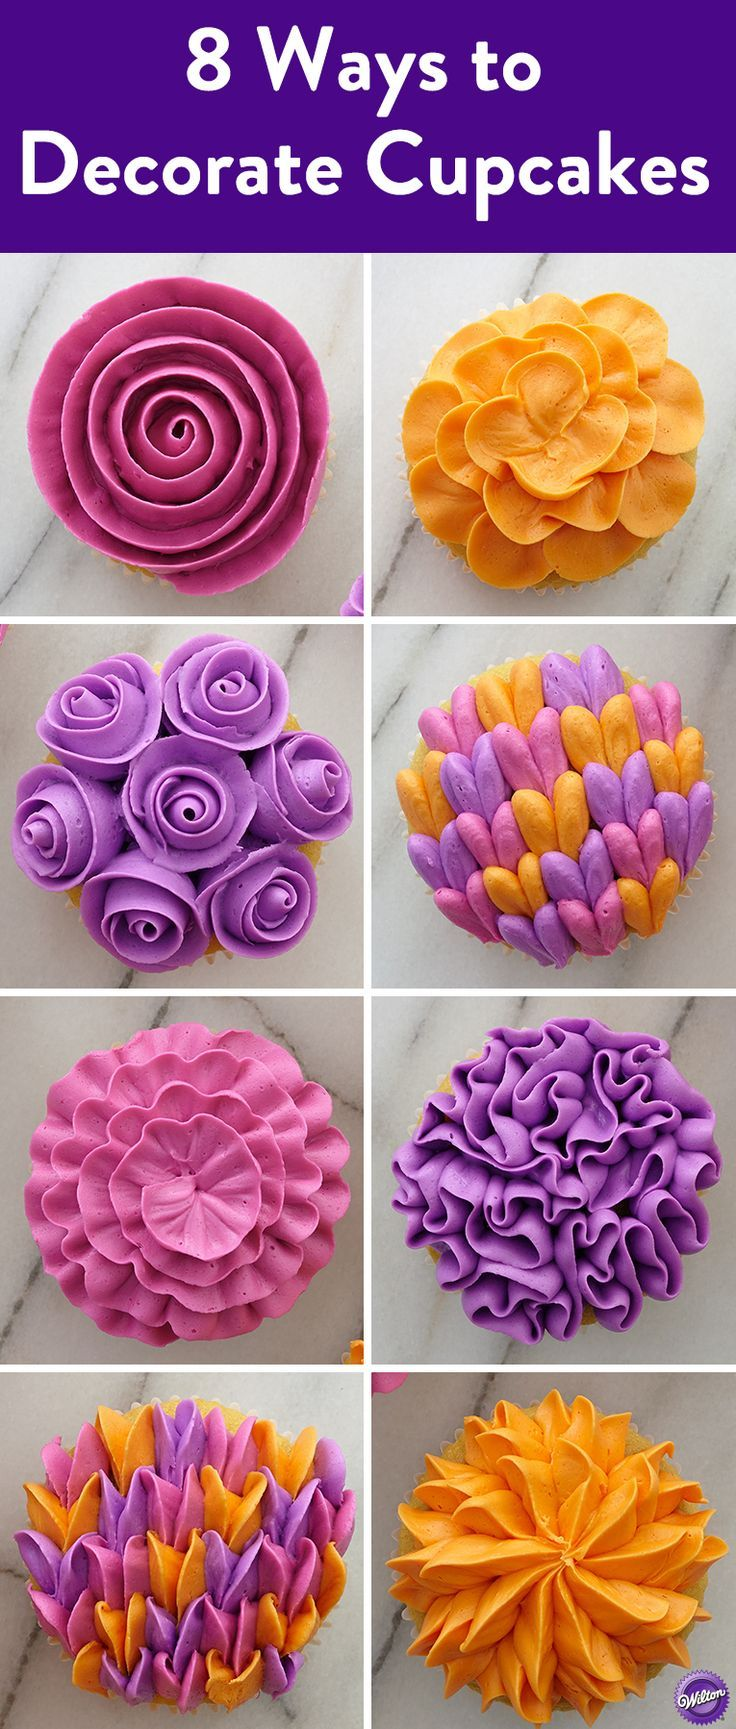 8 Ways to Decorate Cupcakes with Wilton Tip 104 - Let us count the ...